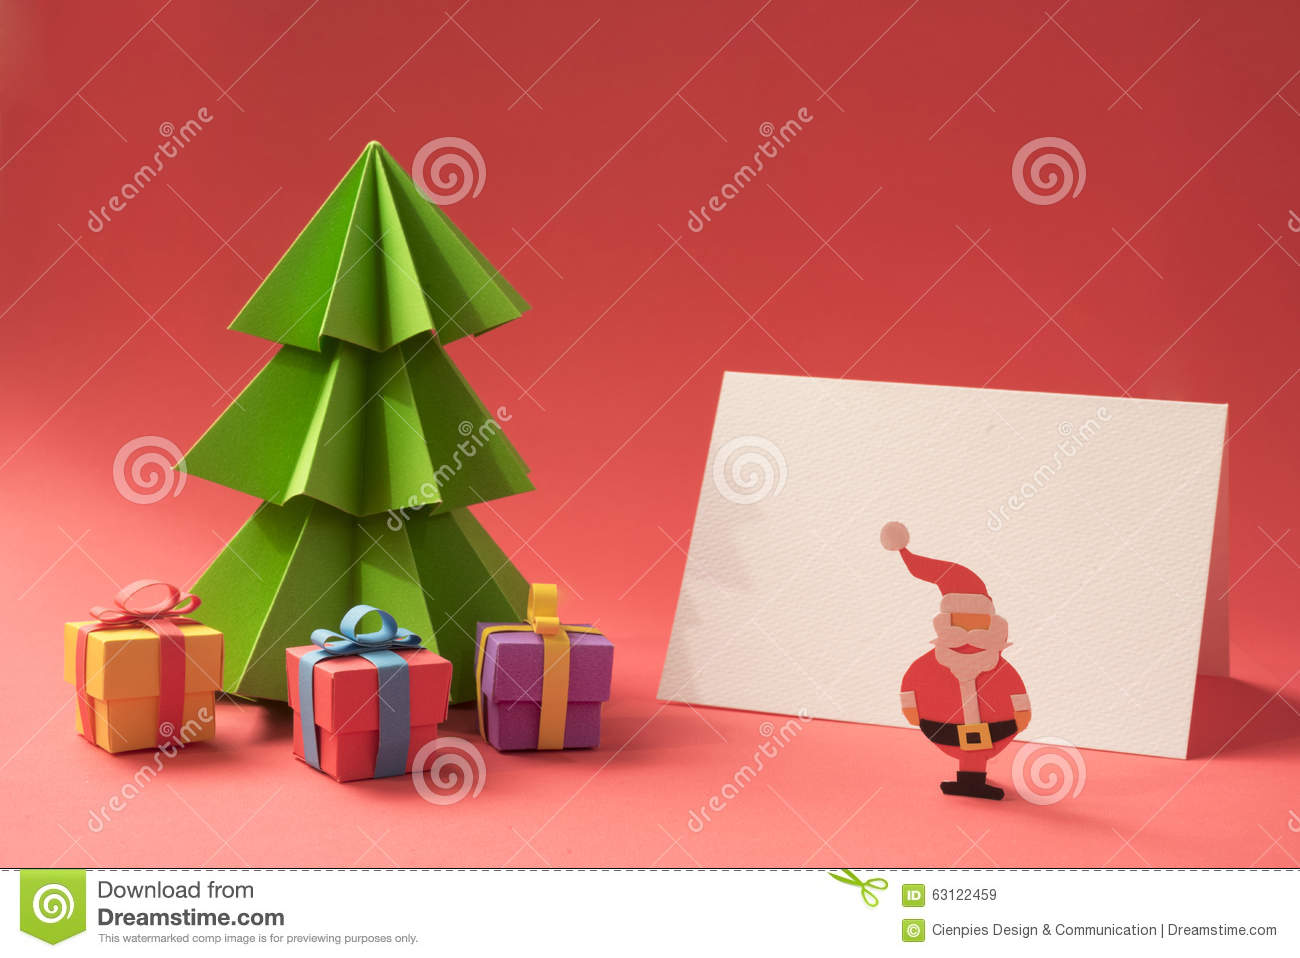 merry christmas paper cut handmade card template stock photo merry christmas paper cut handmade card template